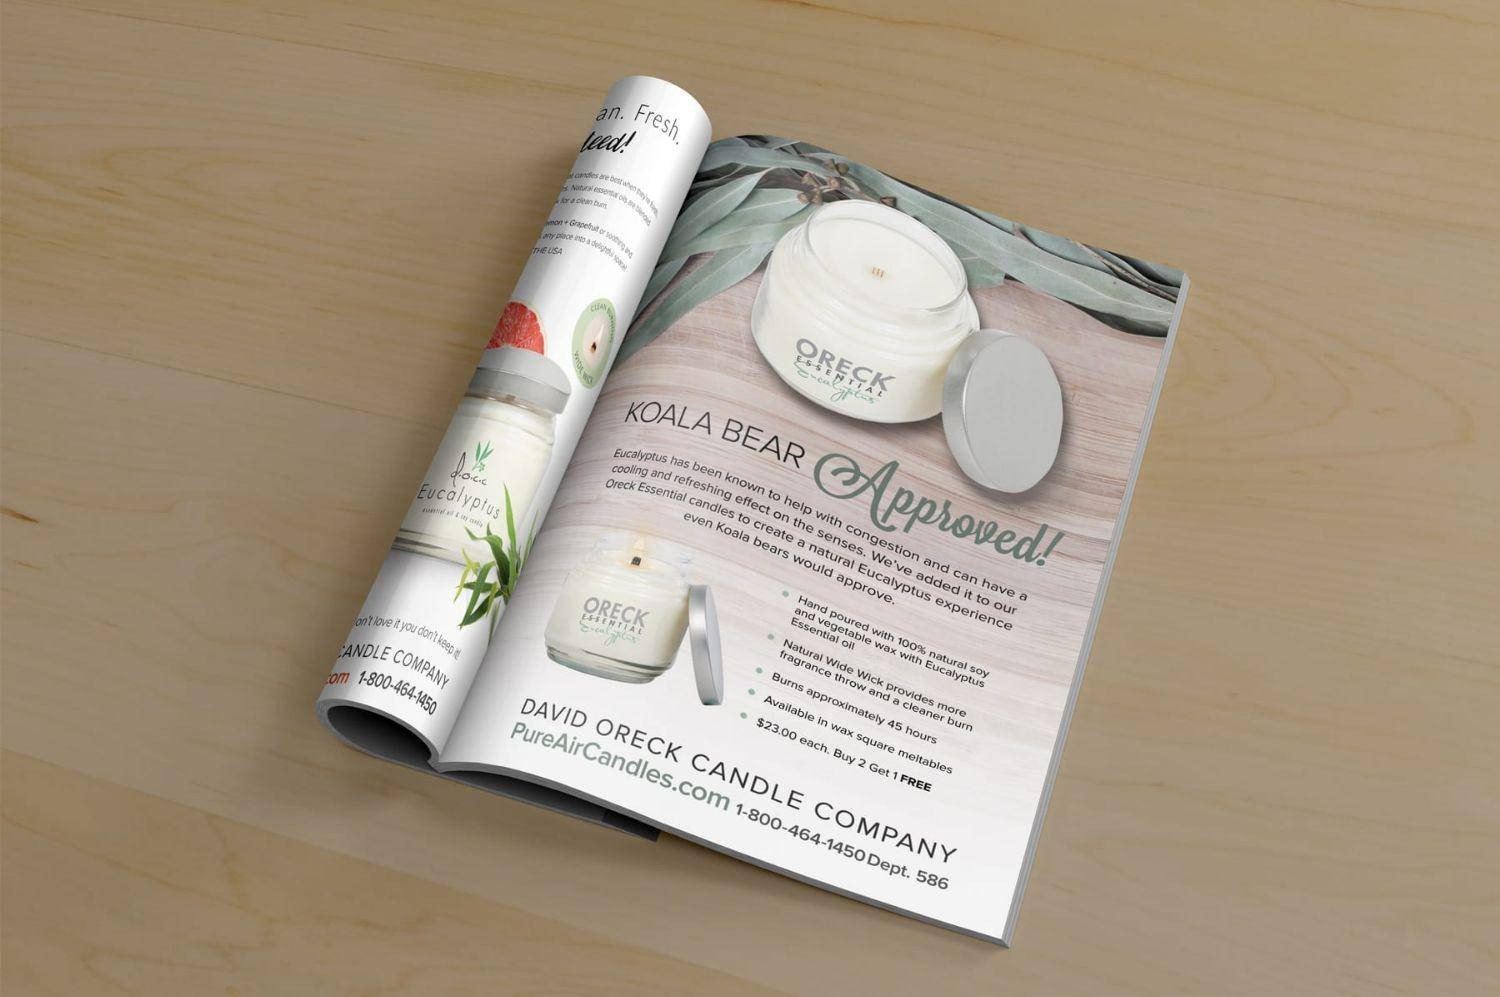 Oreck candles design in a magazine ad